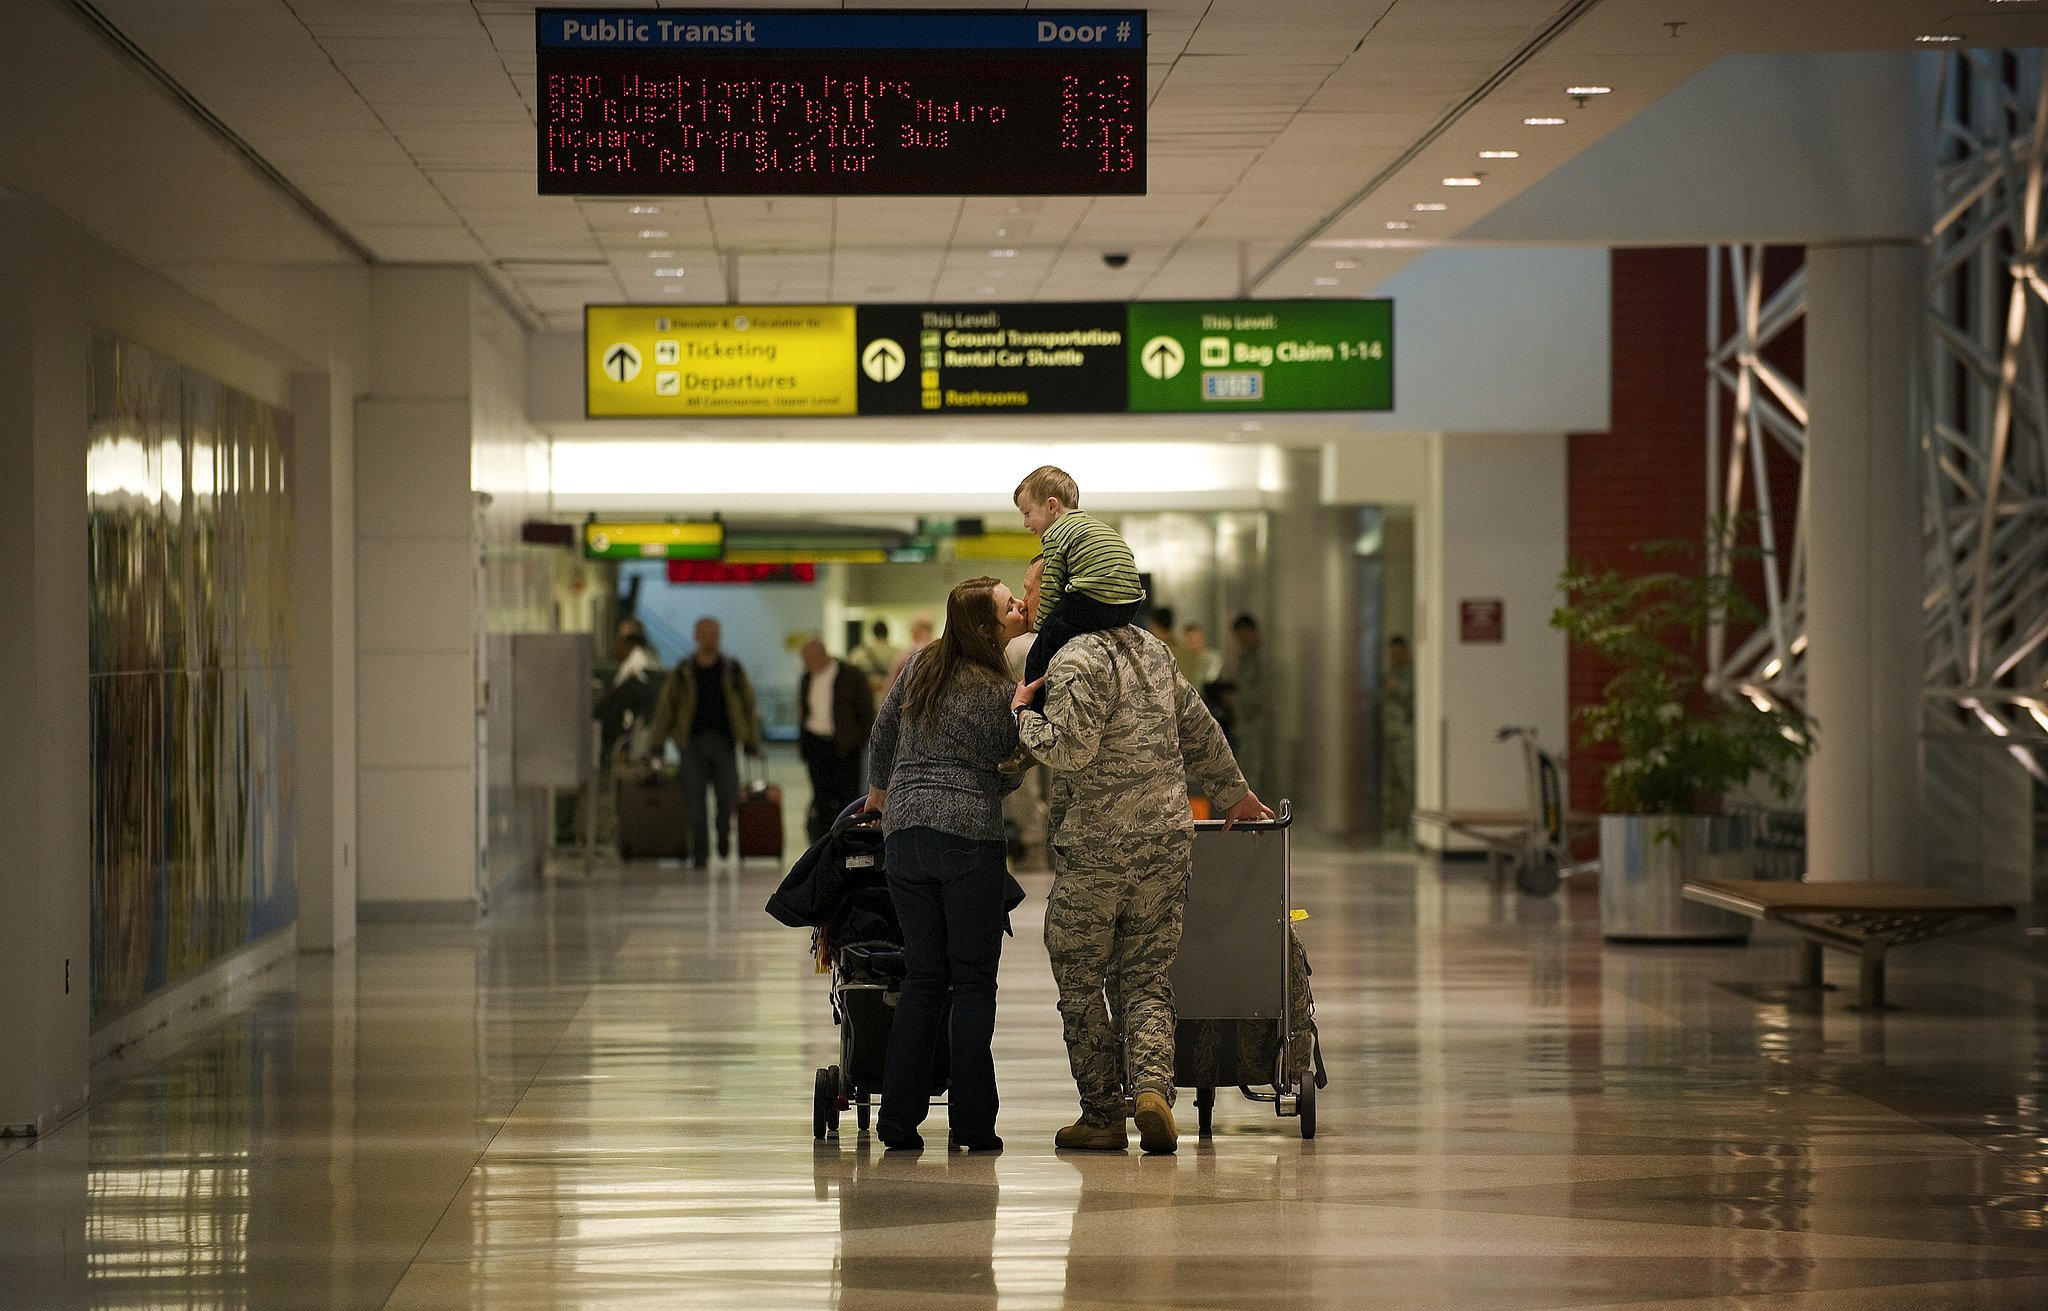 One of the the last Air Force personnel to return from Iraq, Major Steven Vilpors, Commander of the 22nd Expeditionary Weather Squadron, kissed his wife, Joanne, while giving his son Connor a ride on his shoulders at Baltimore Washington International Airport in Baltimore on Dec. 20, 2011.